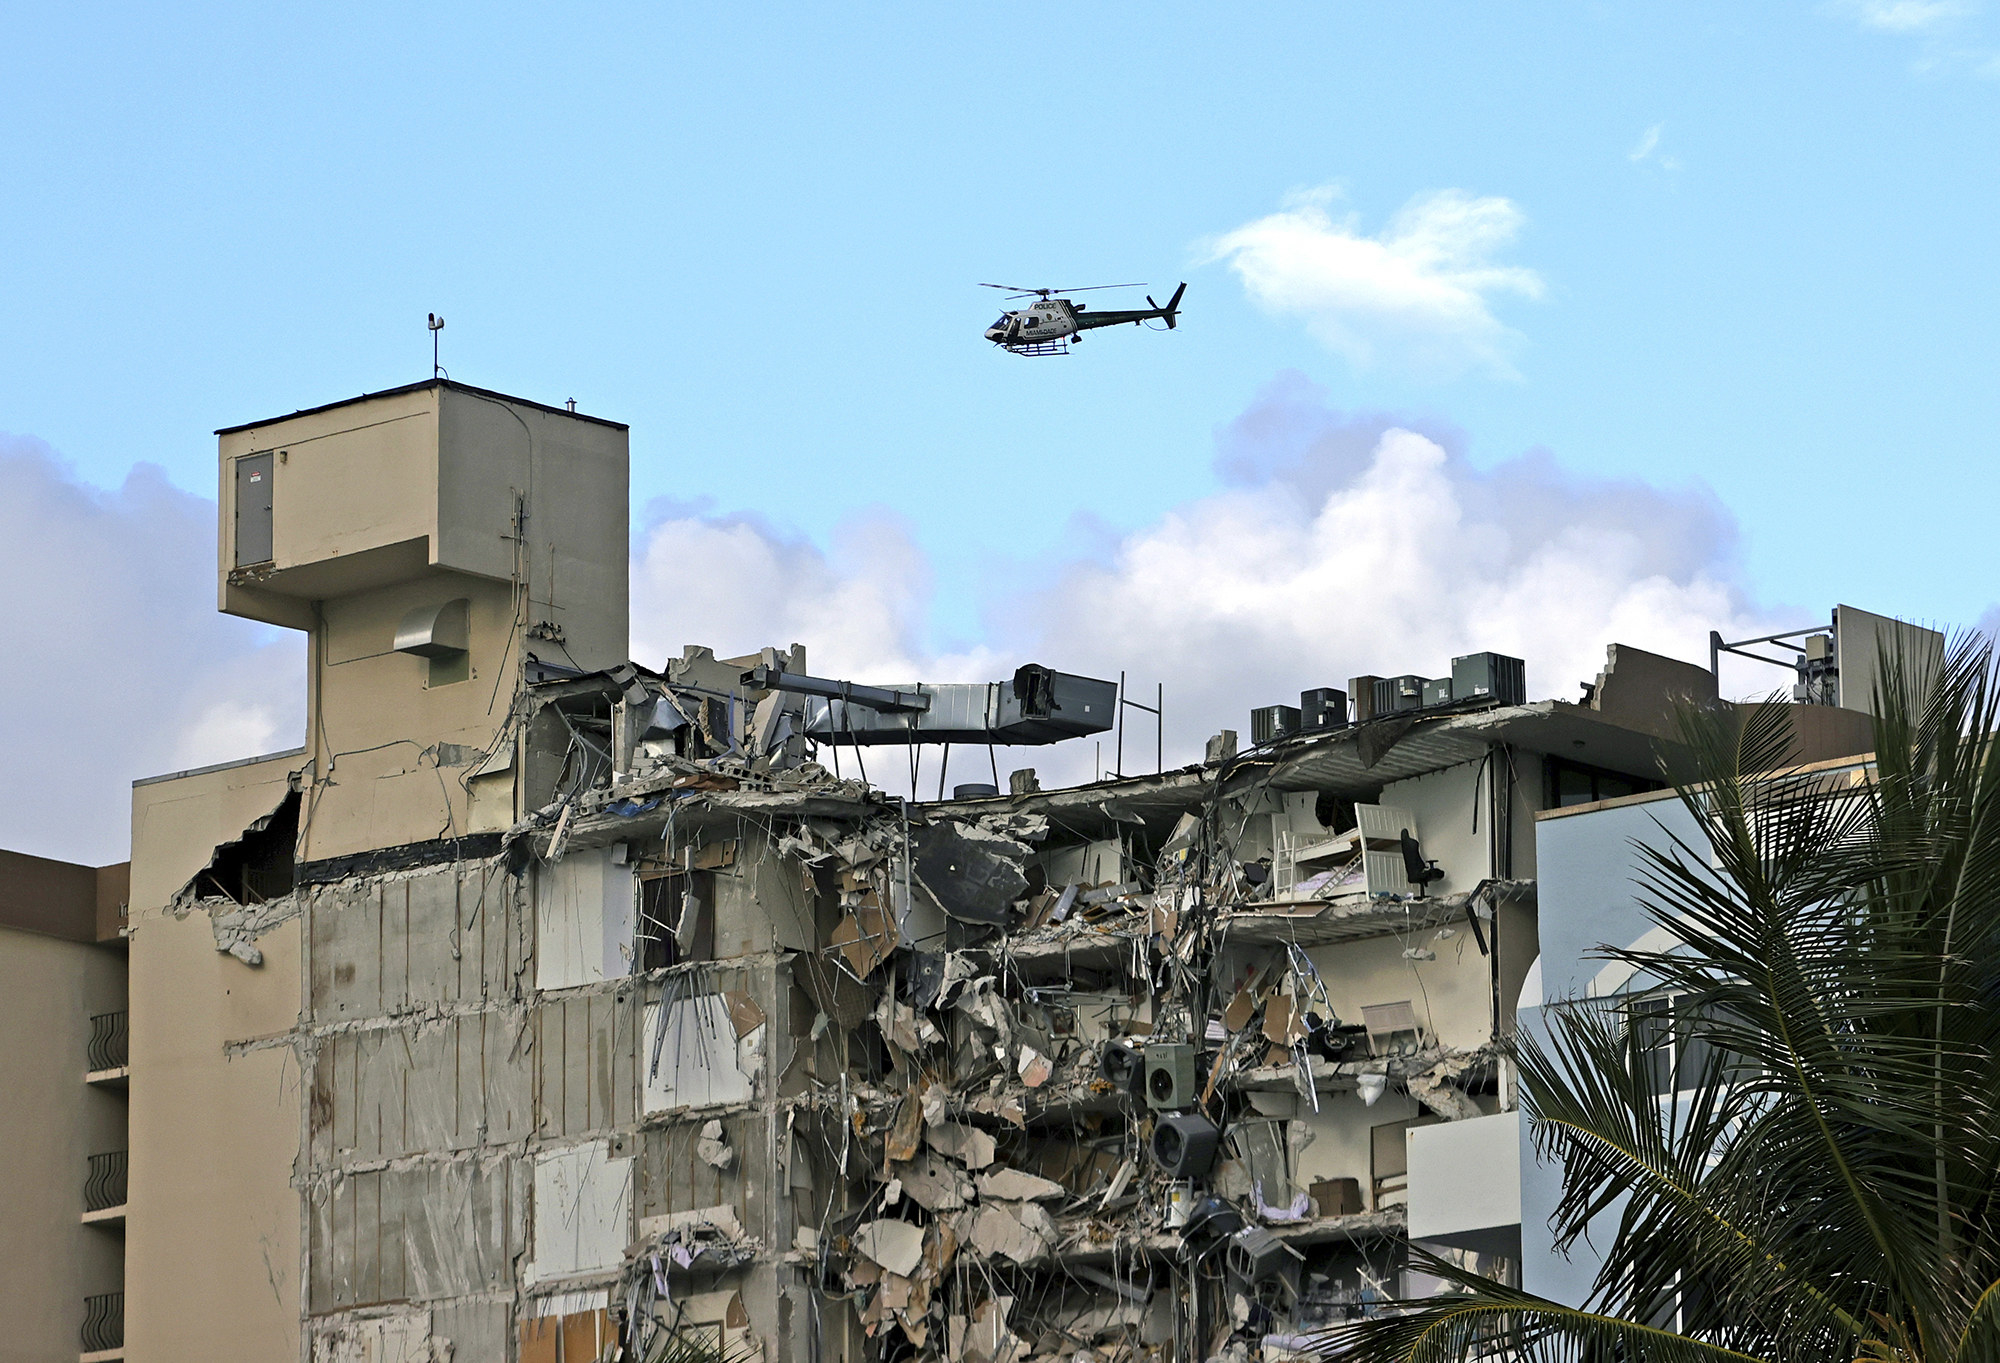 A helicopter flies over a partially collapsed building with a palm tree in the foreground